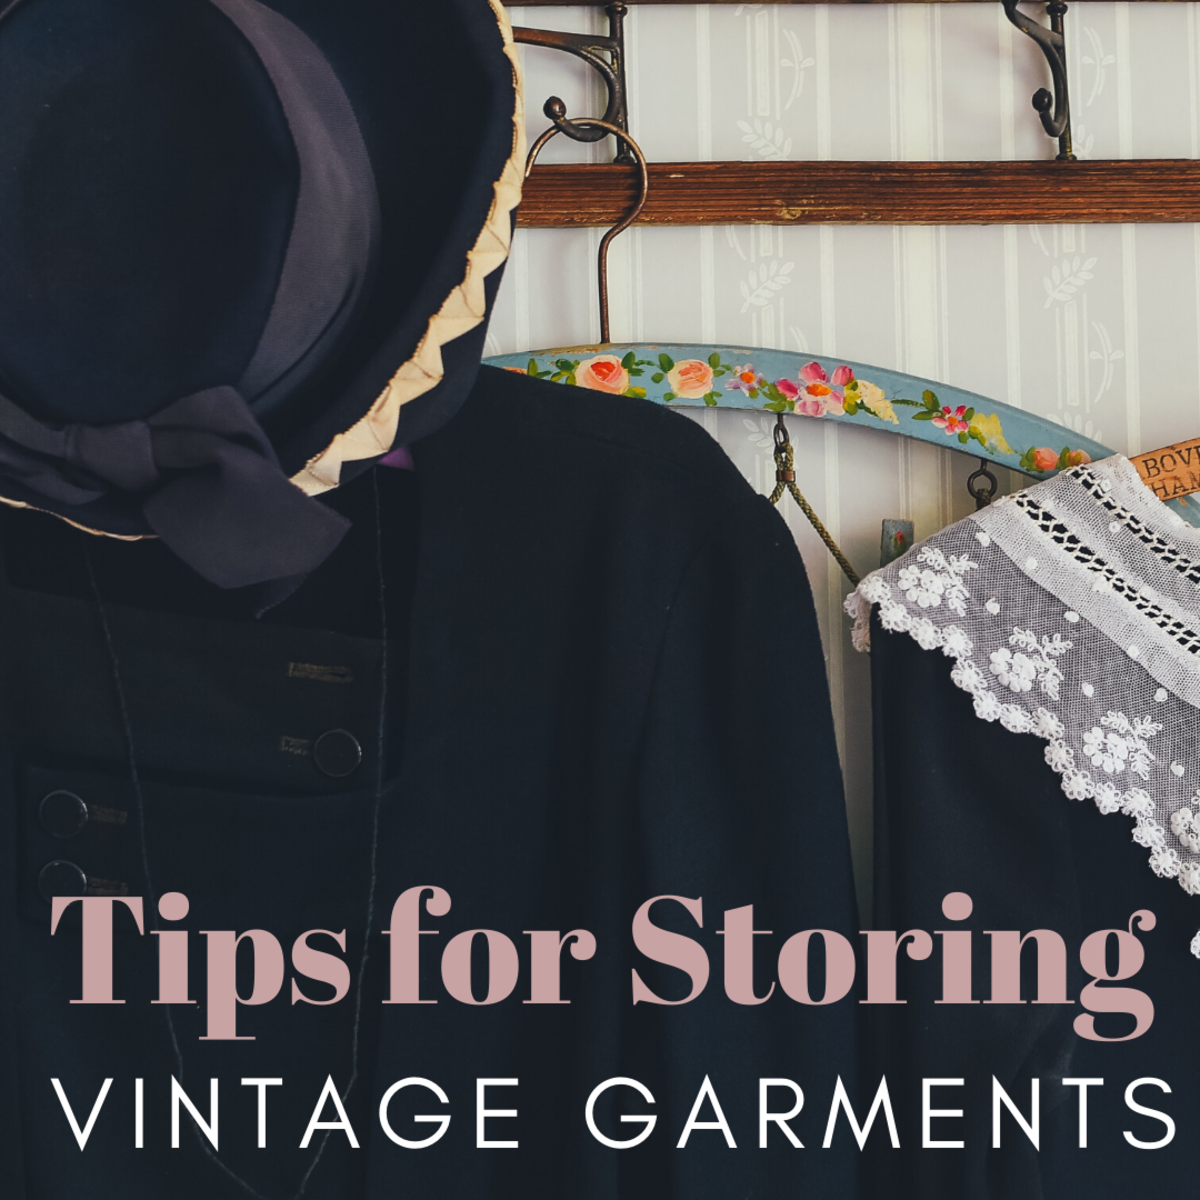 How to Store Vintage Clothing